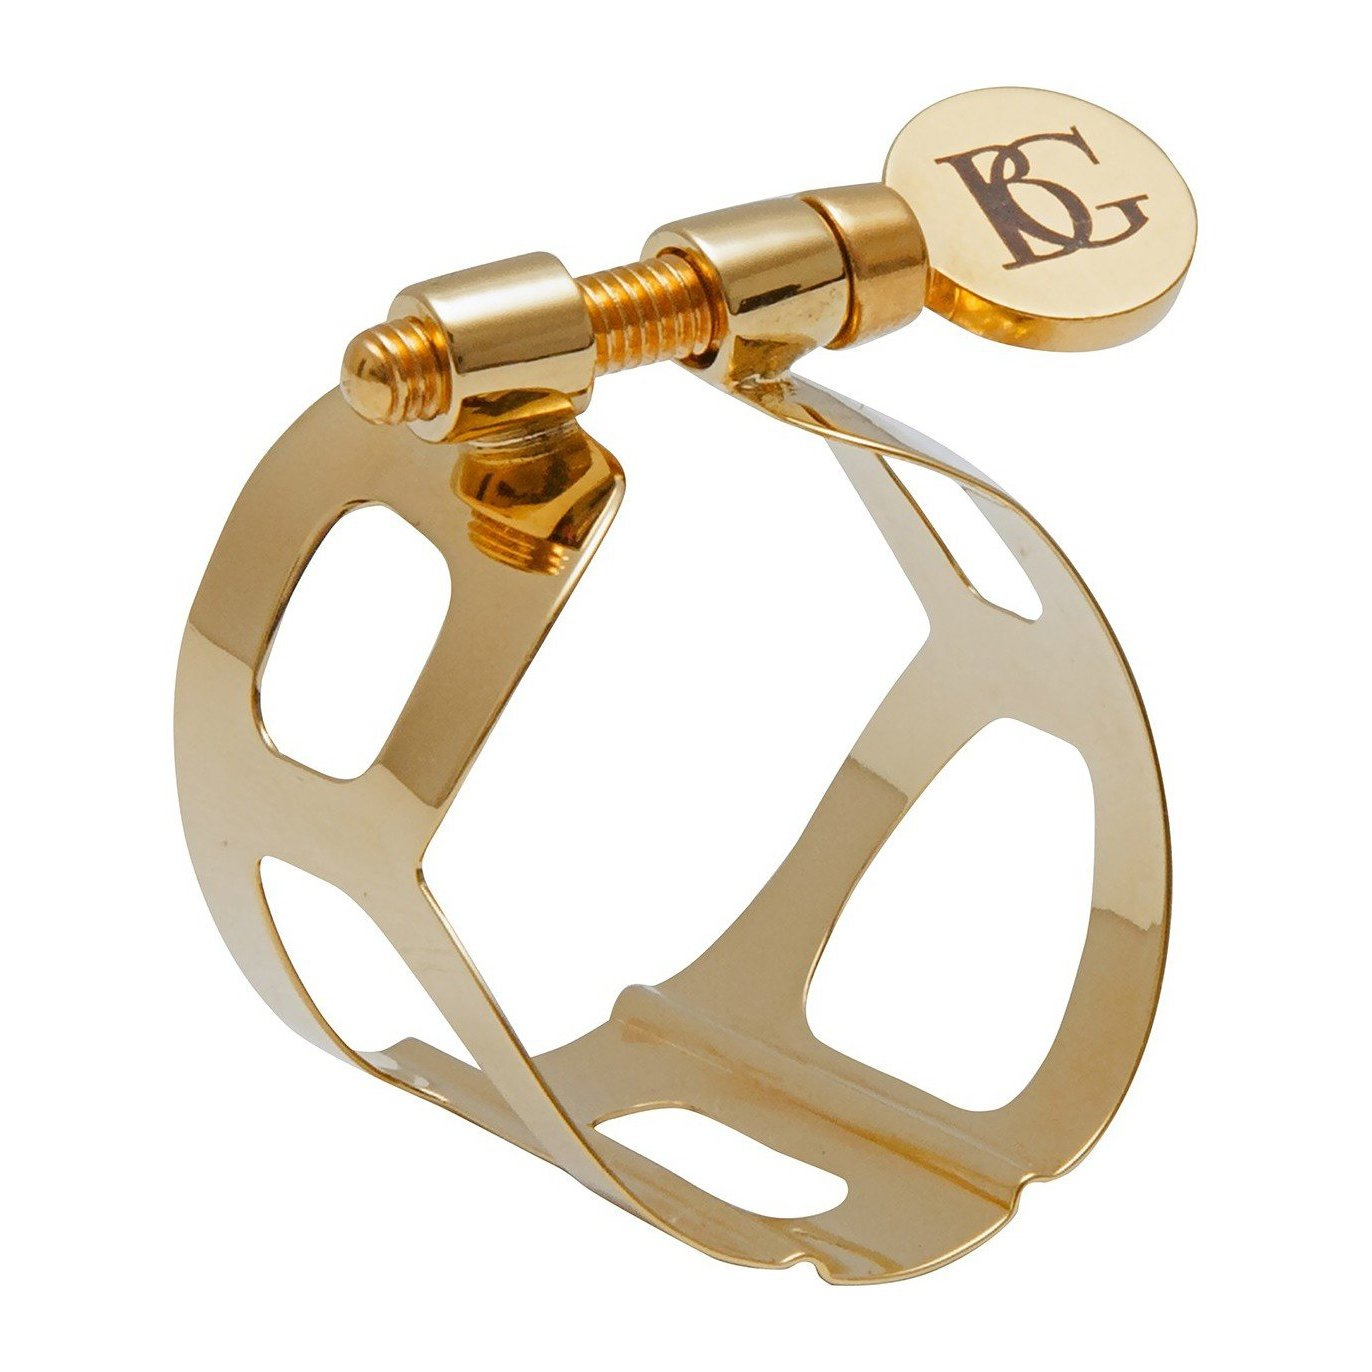 BG France - Tradition Ligatures for Tenor Saxophone-Ligature-BG France-Gold Lacquered-Music Elements